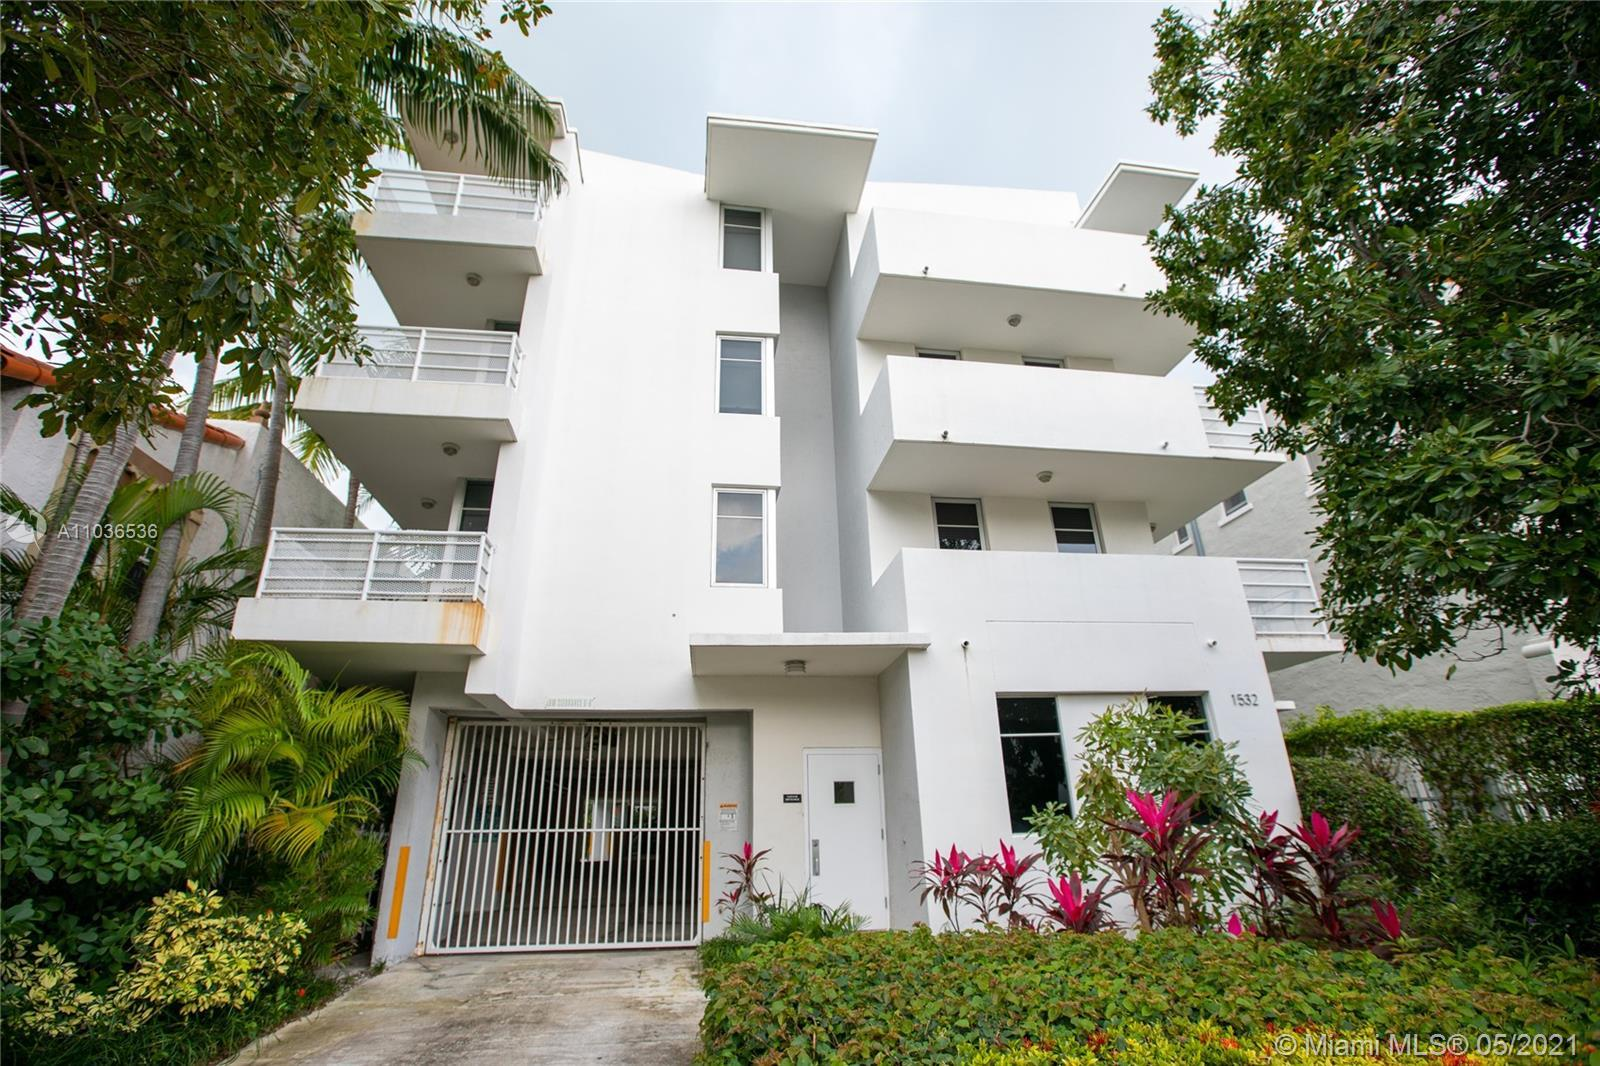 Turn-key 2 bed / 2 bath corner unit condo in the very heart of South Beach within easy walking dista